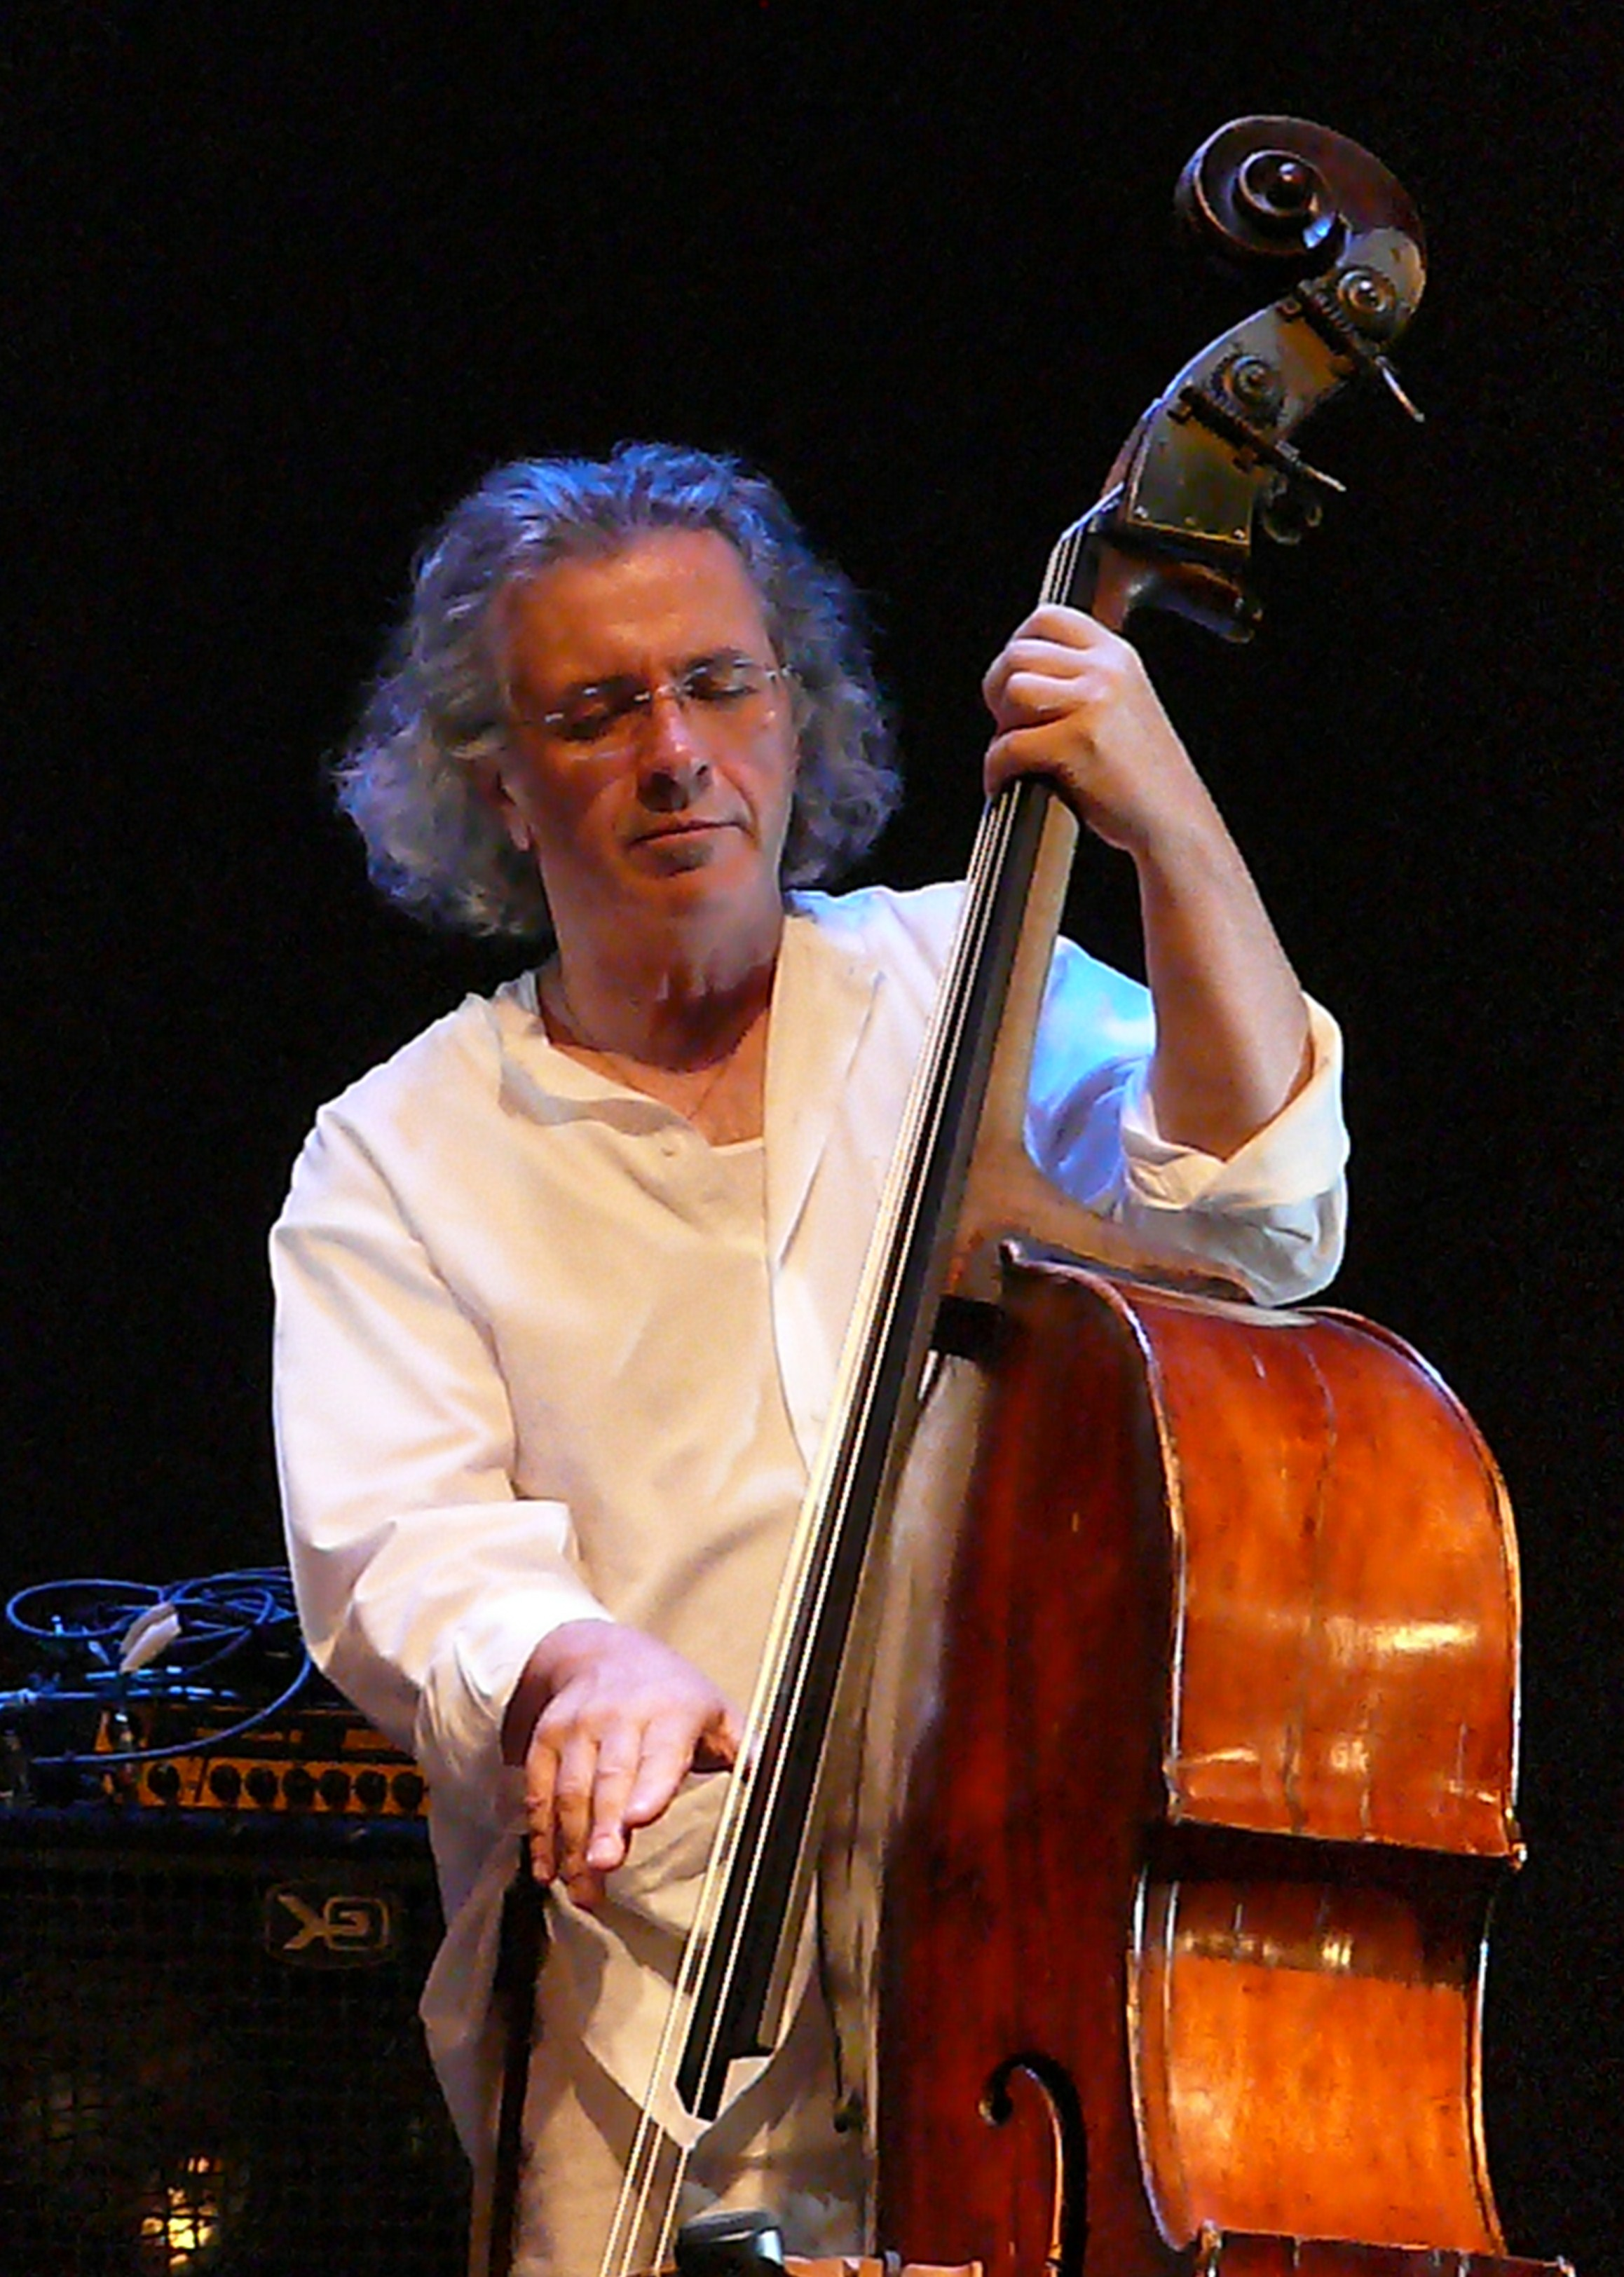 Michael Bisio at the Vision Festival 2011